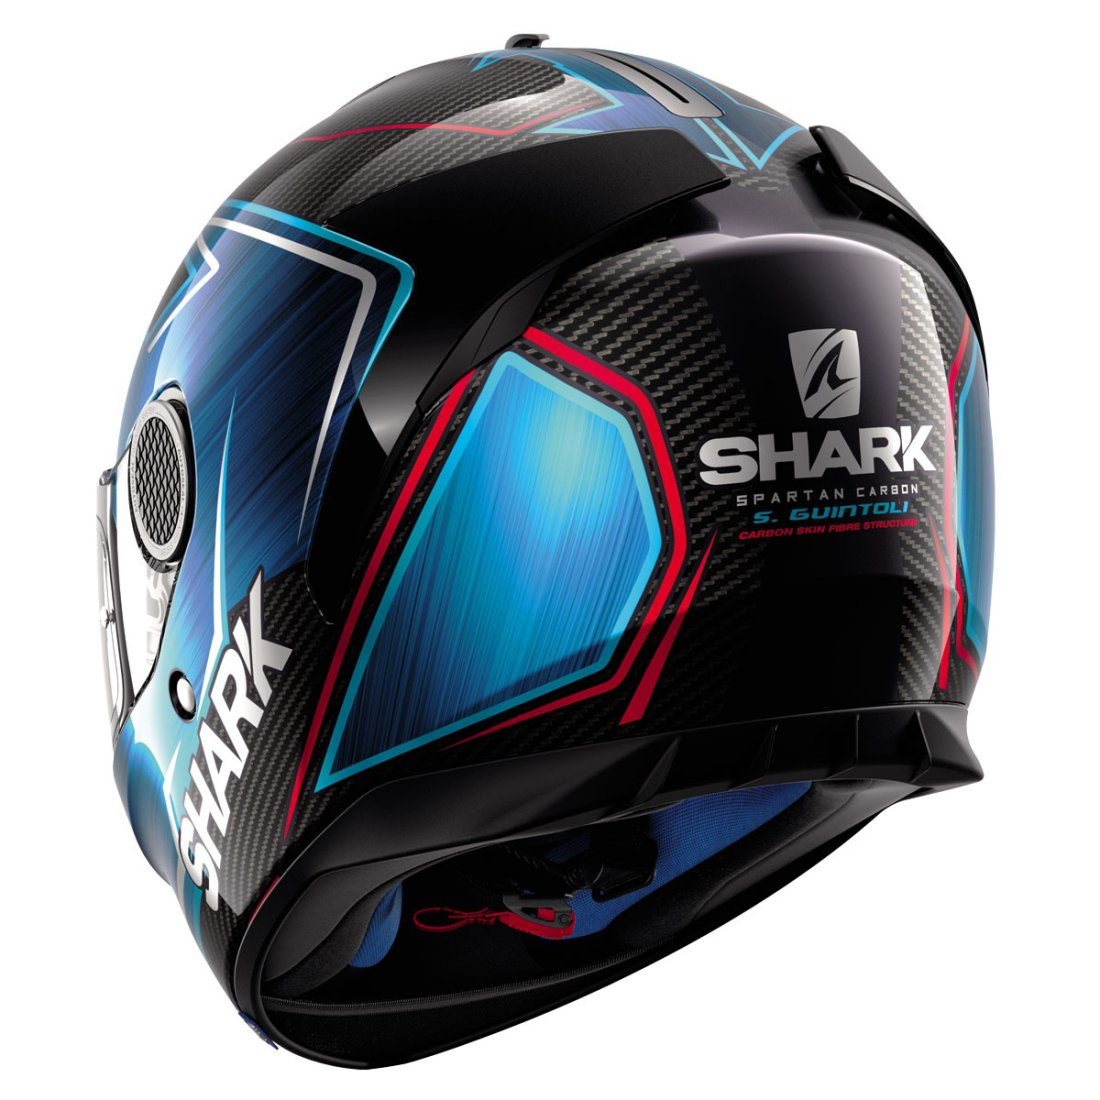 casque shark spartan carbon guintoli carbon chrom blue motocard. Black Bedroom Furniture Sets. Home Design Ideas